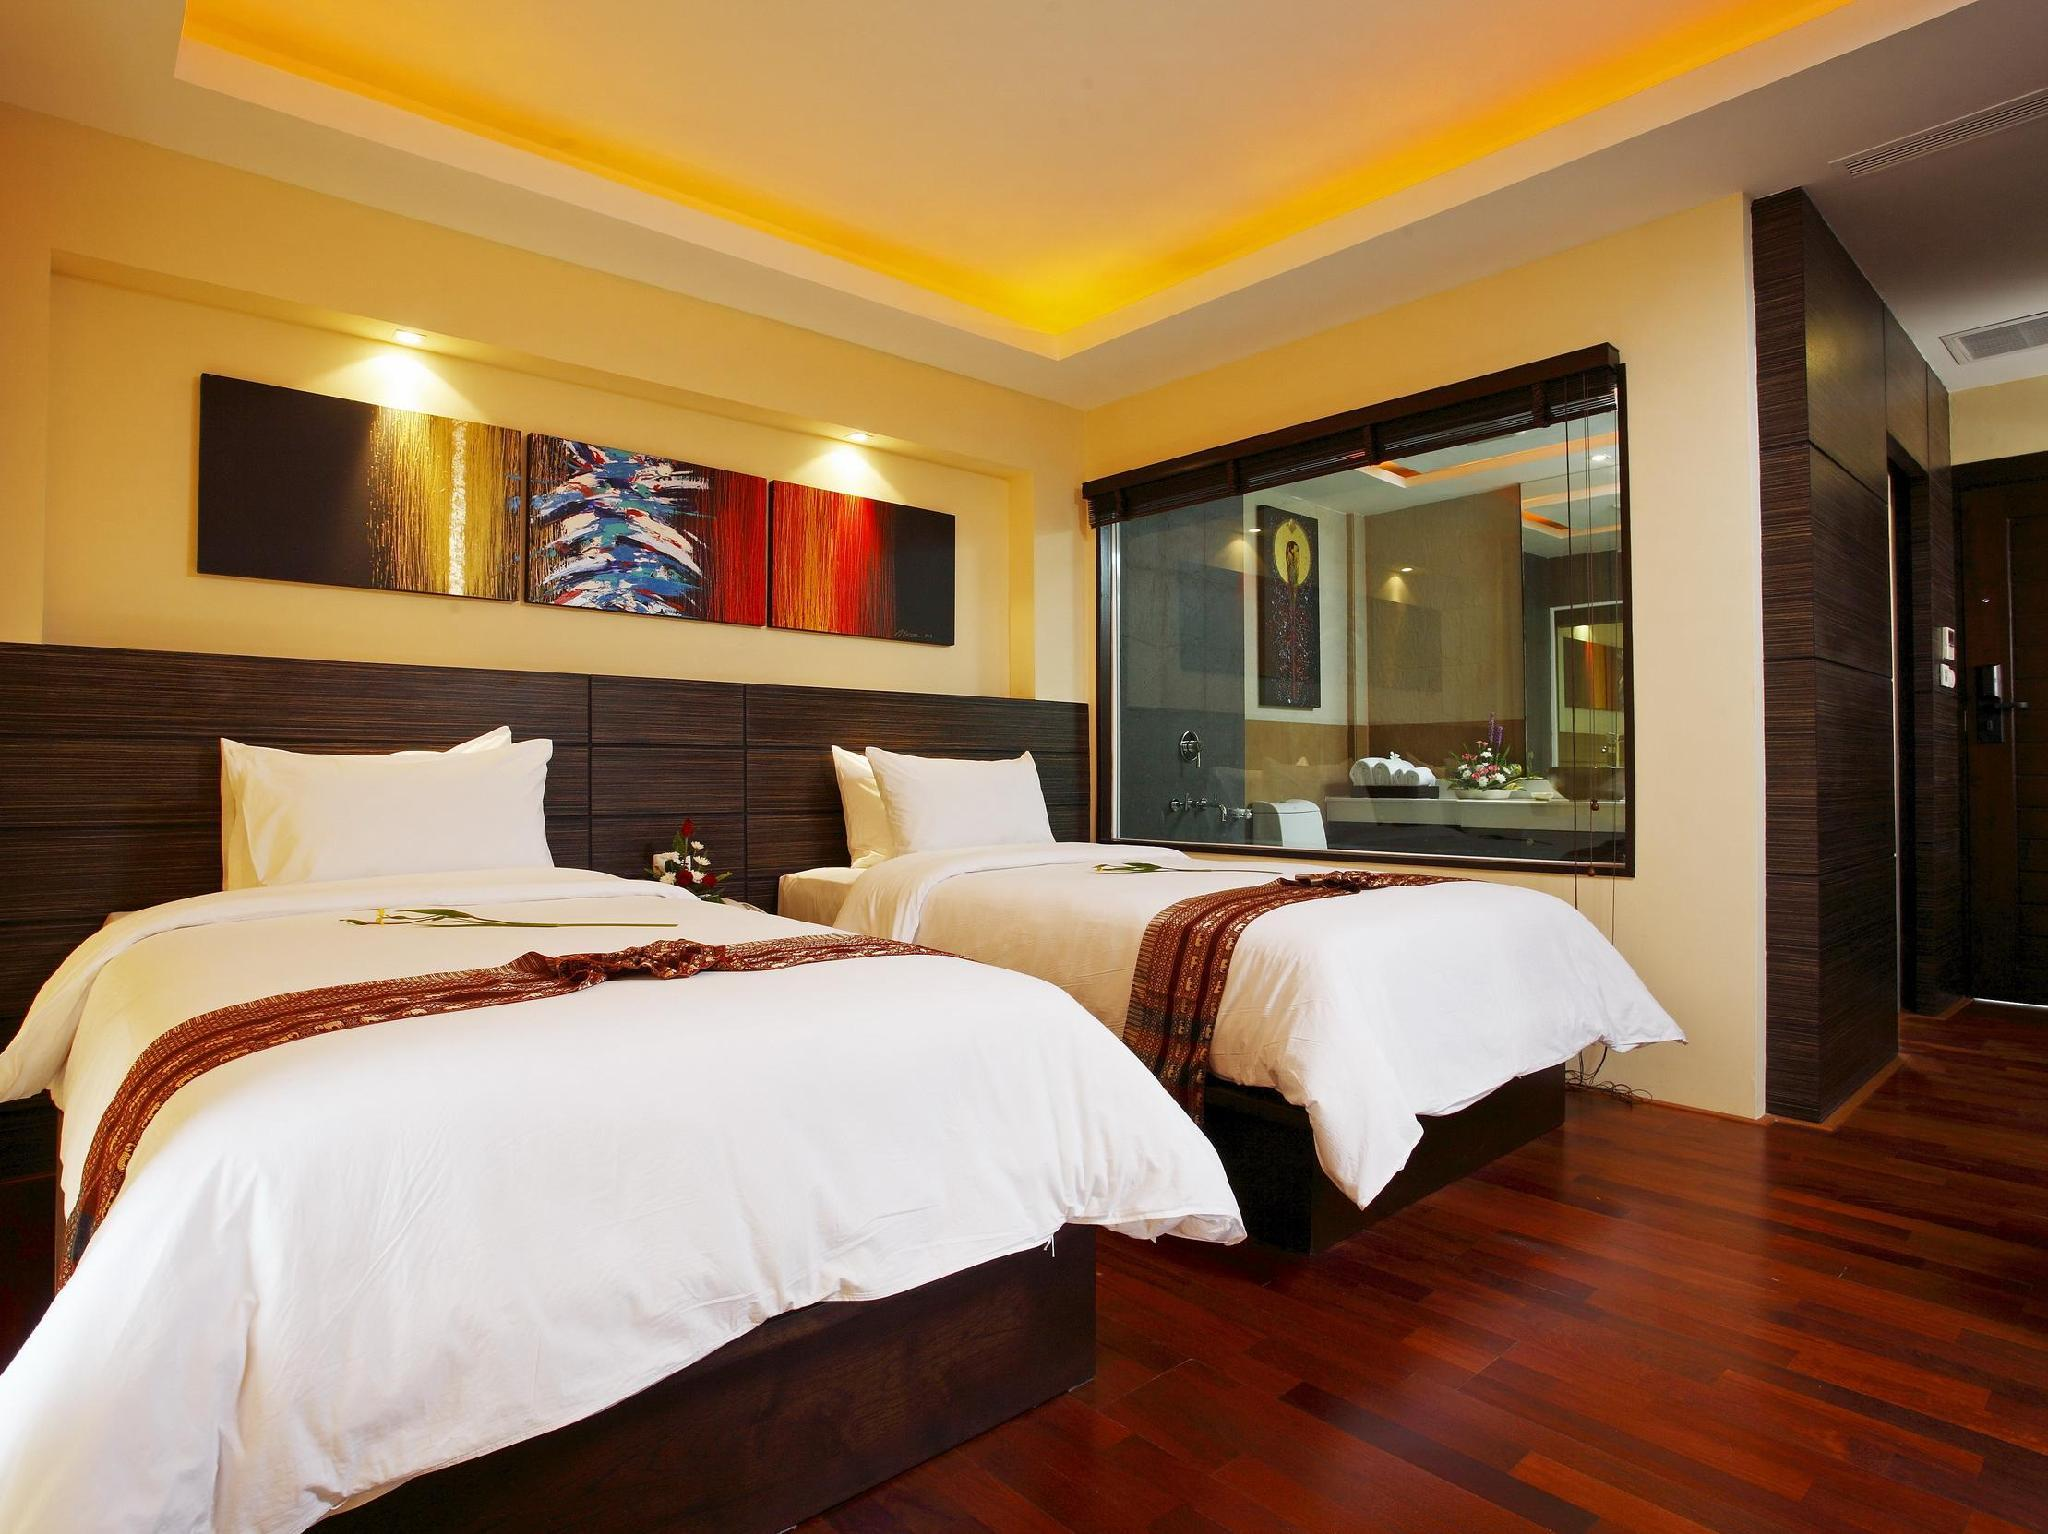 R-Mar Resort and Spa, Pulau Phuket